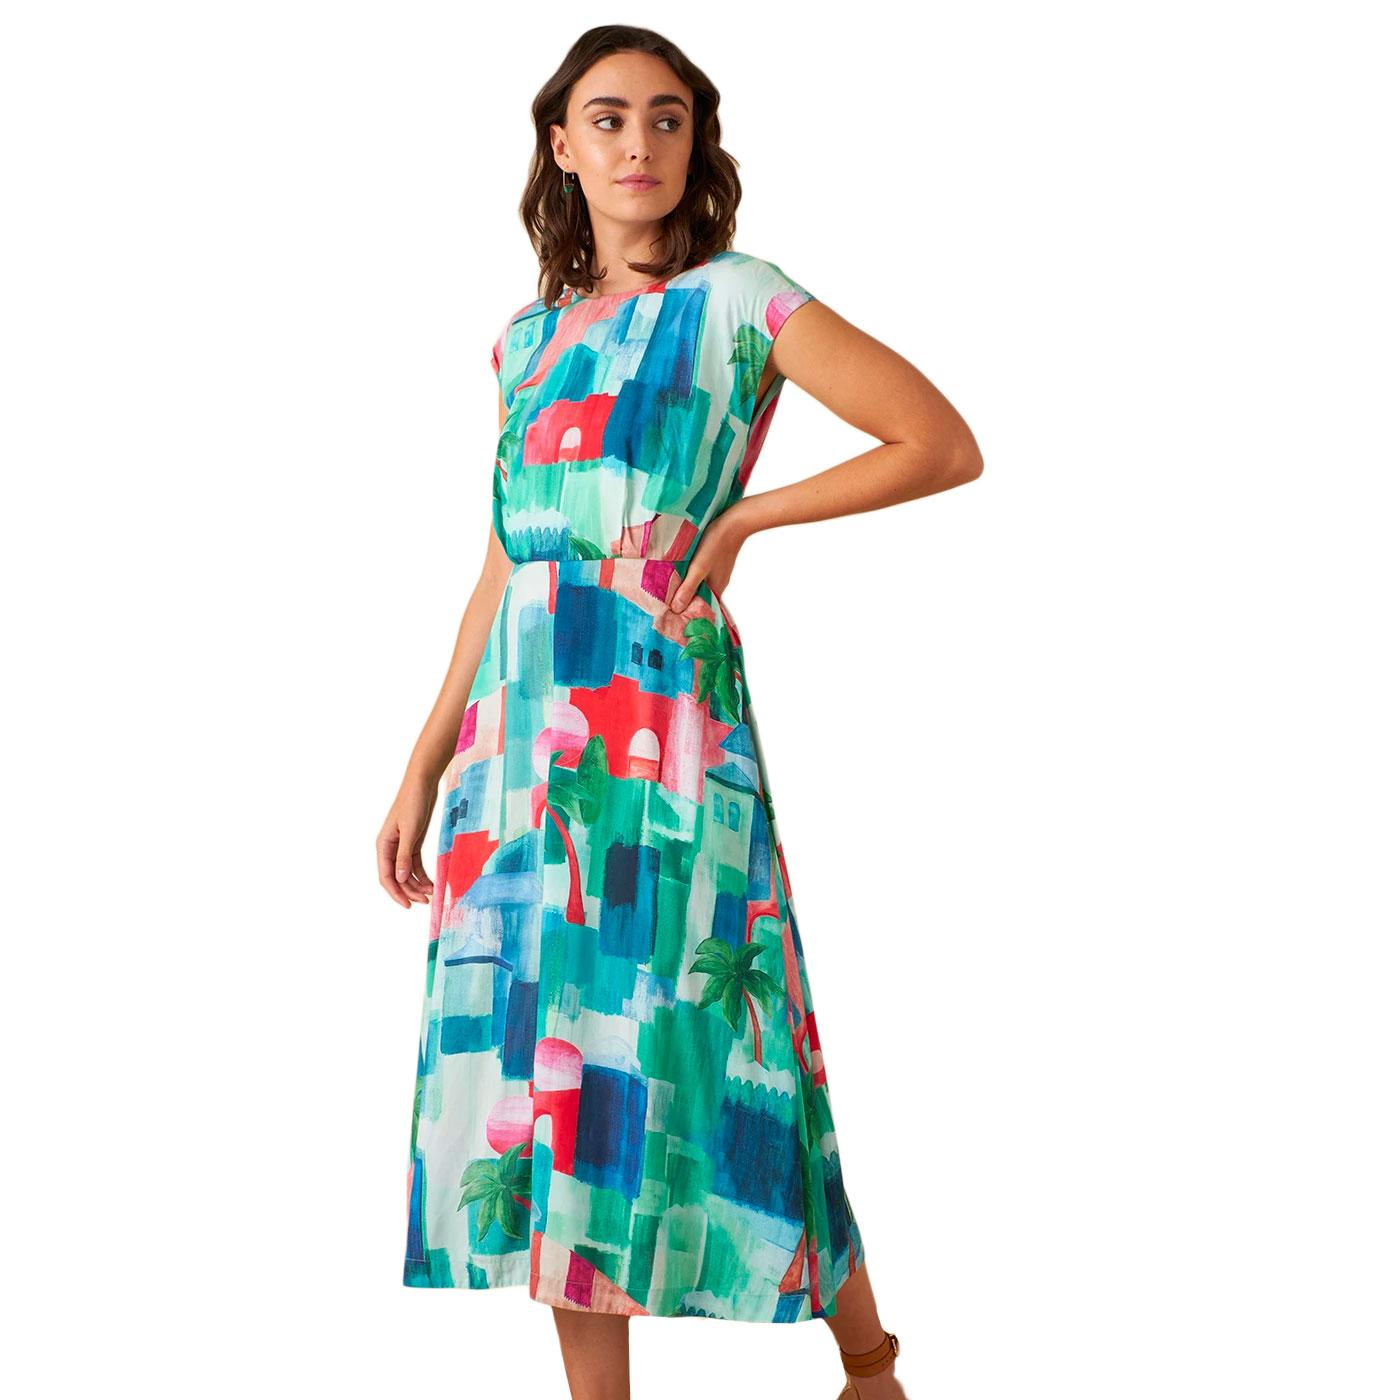 Elodie EMILY & FIN Marrakech Landscape Midi Dress